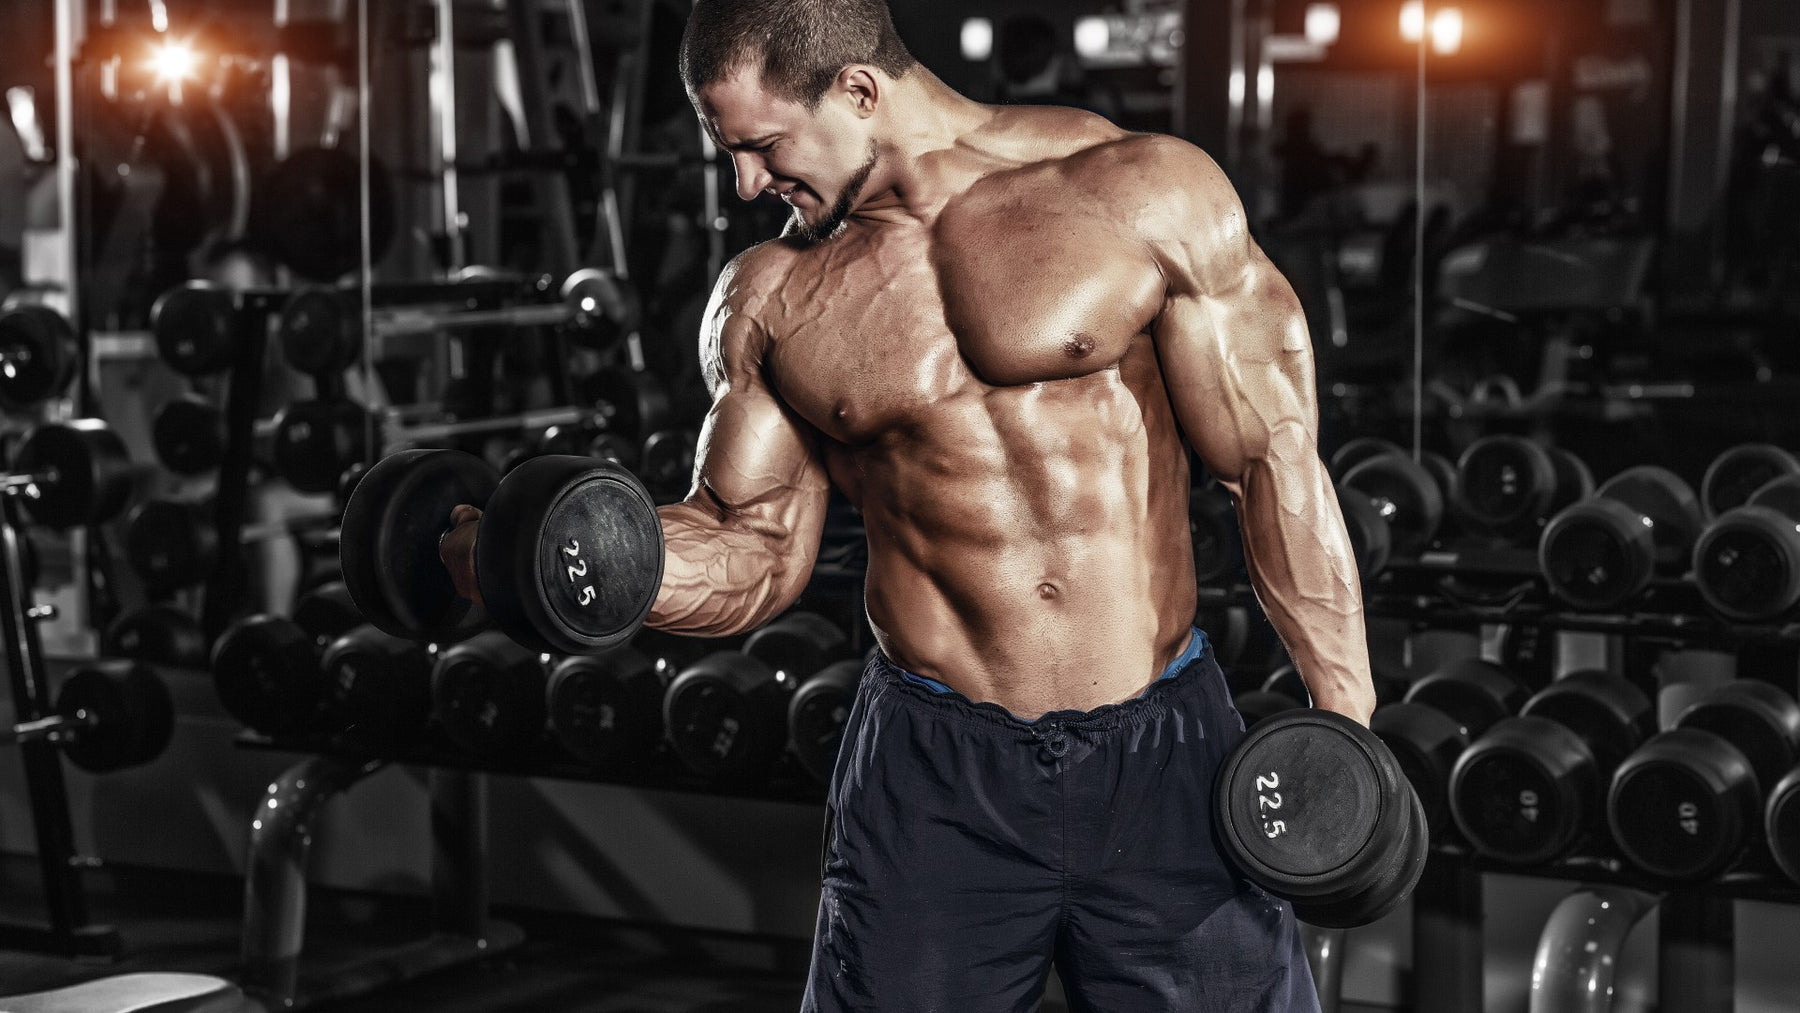 Muscle Building Madness: 8 Things You Probably Need to Stop Doing